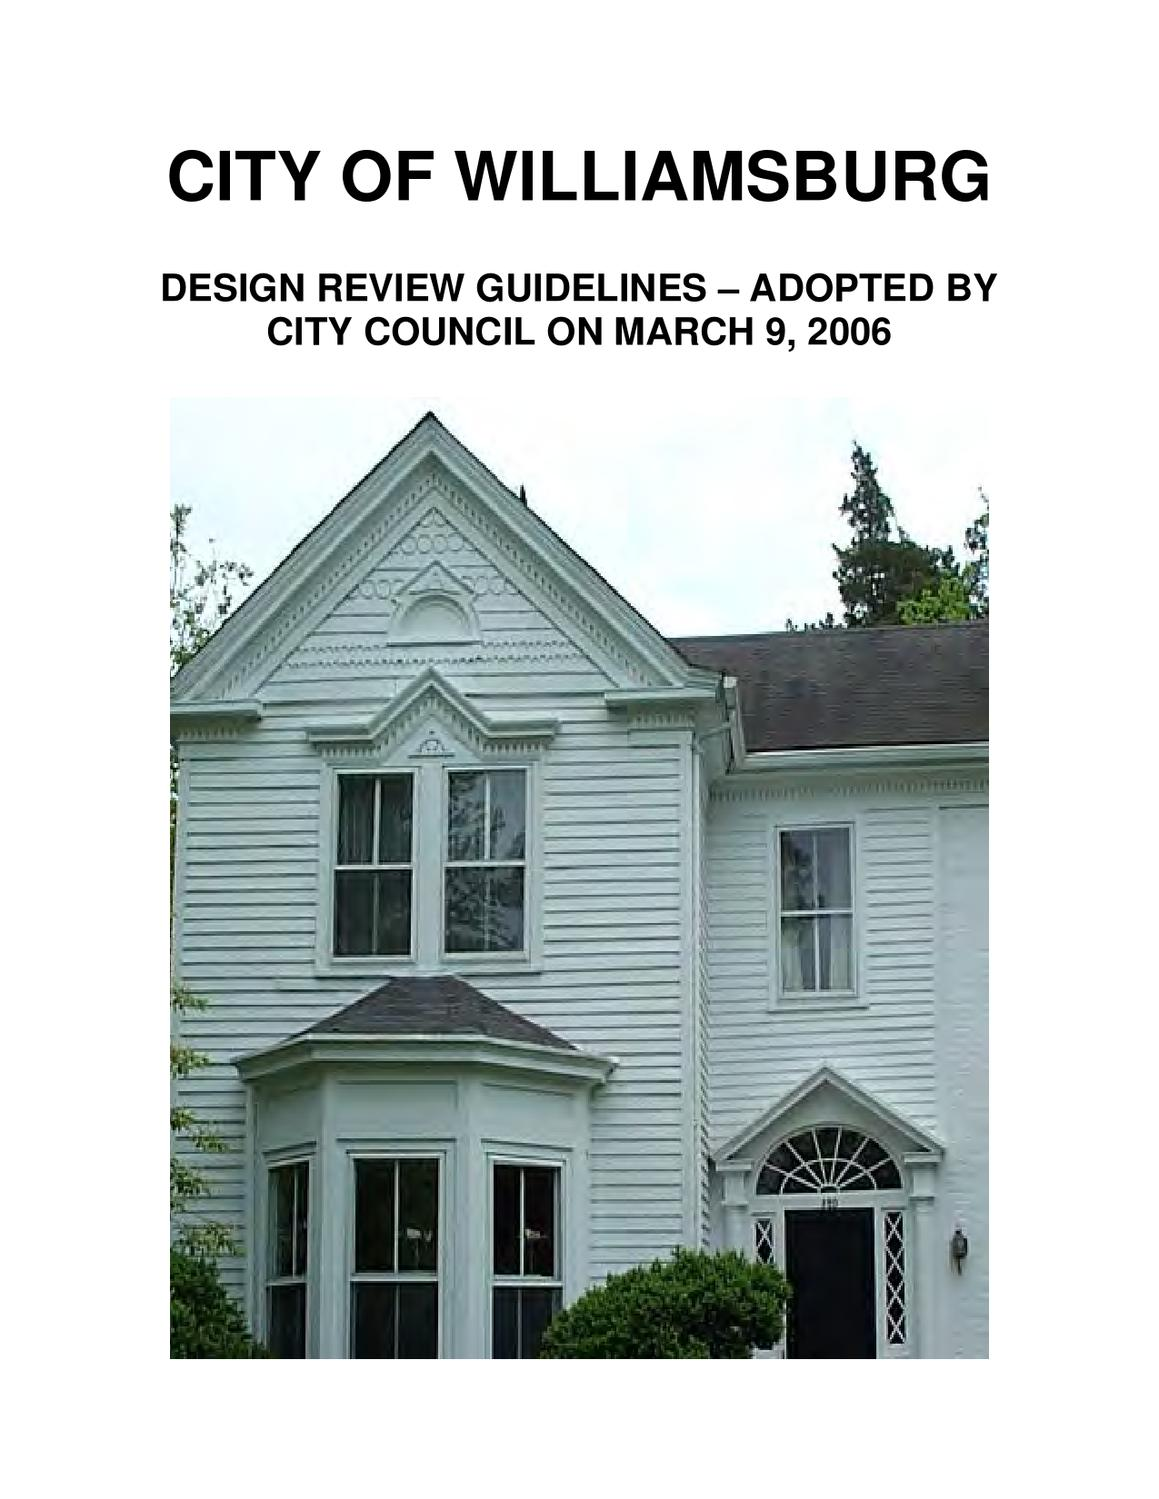 Williamsburg Architectural Design Review Guidelines By